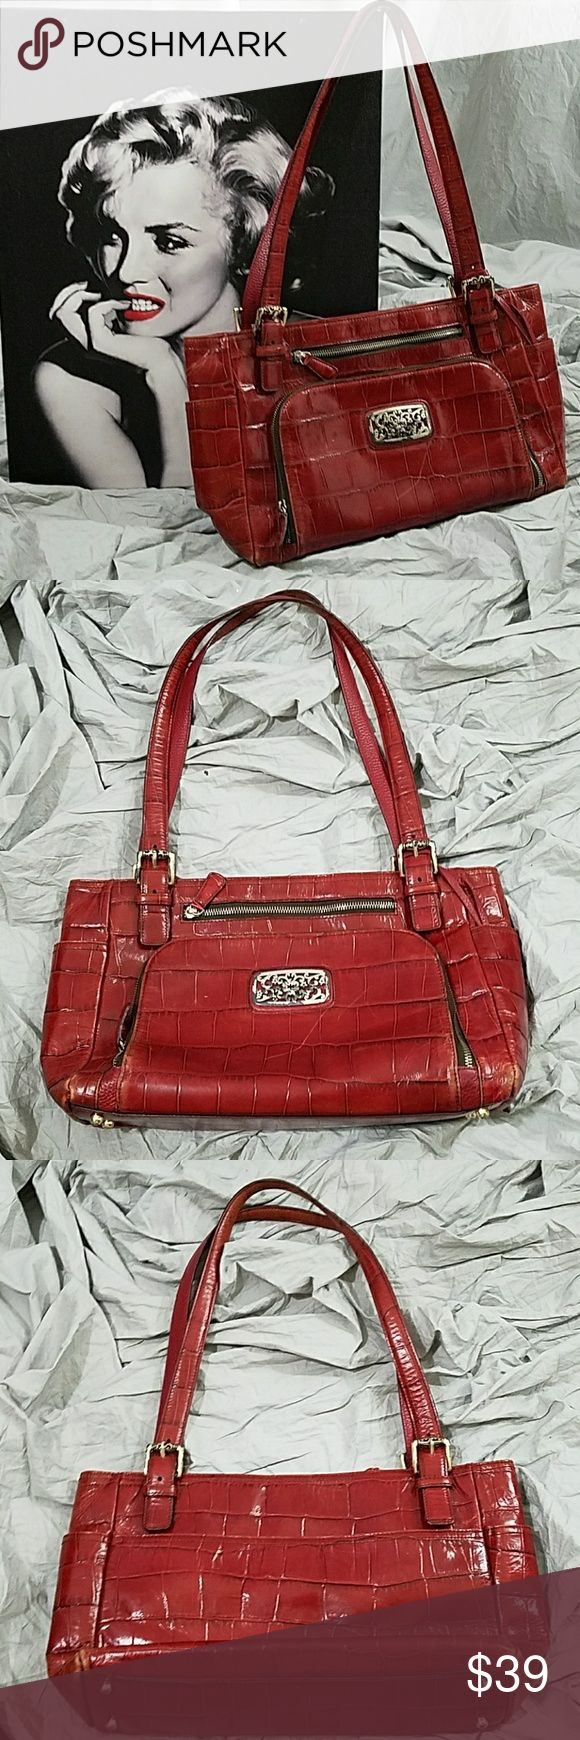 Brighton purse 13 inches across bottom  9.5 height 12 inches top of handle to top of bag  Some wear on bottom corners, see photos Brighton  Bags Shoulder Bags